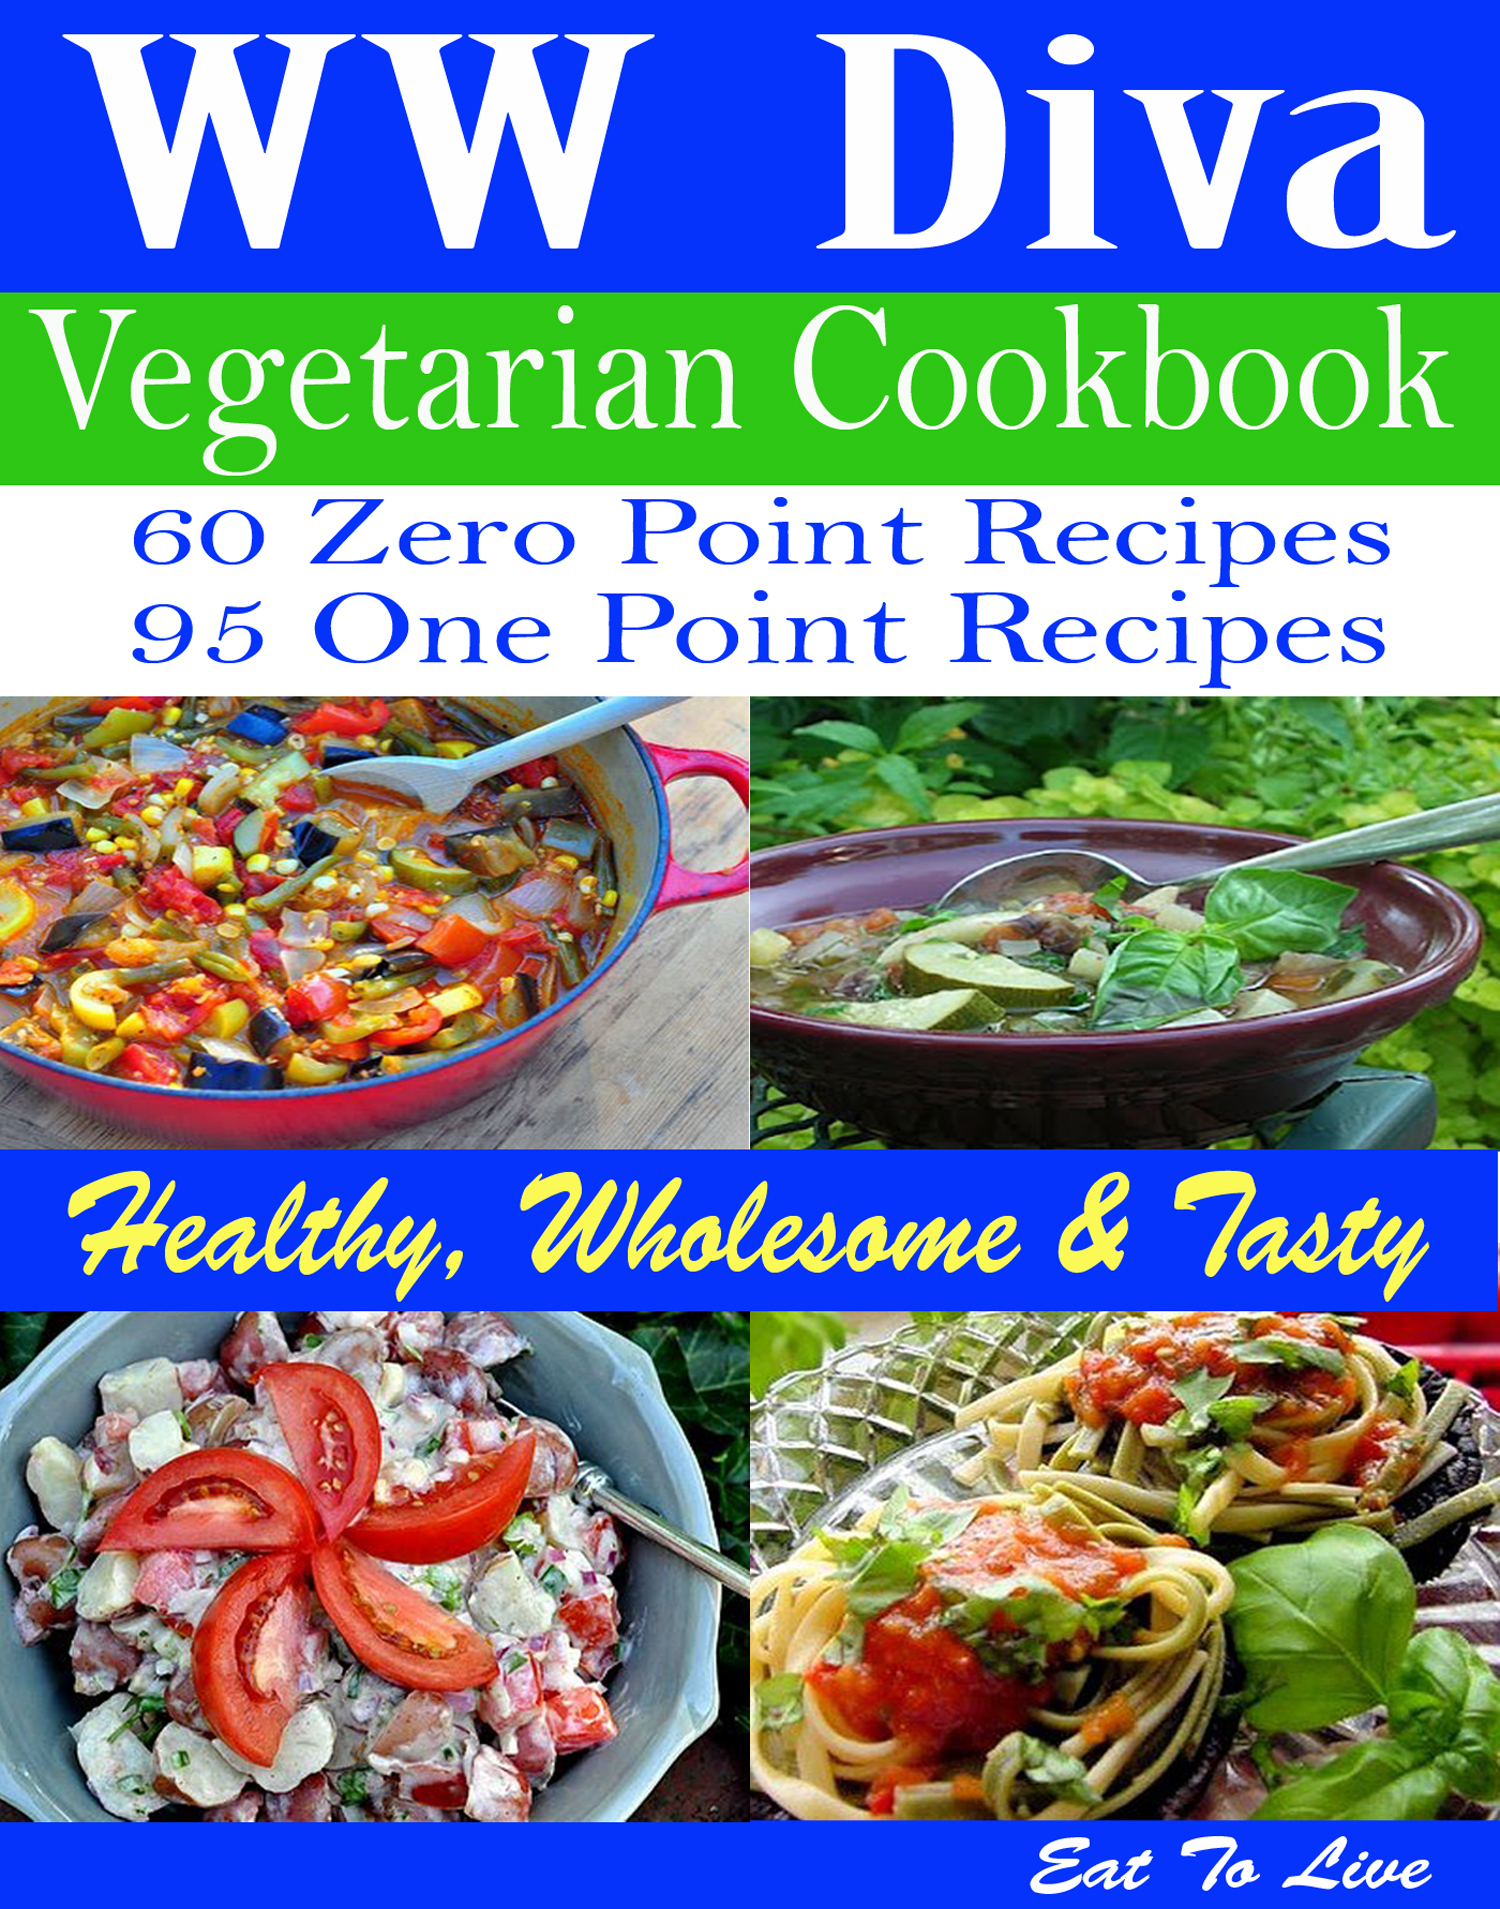 WW Diva Vegetarian Cookbook: 60 Zero Point Recipes 95 One Point Recipes: Healthy, Wholesome & Tasty